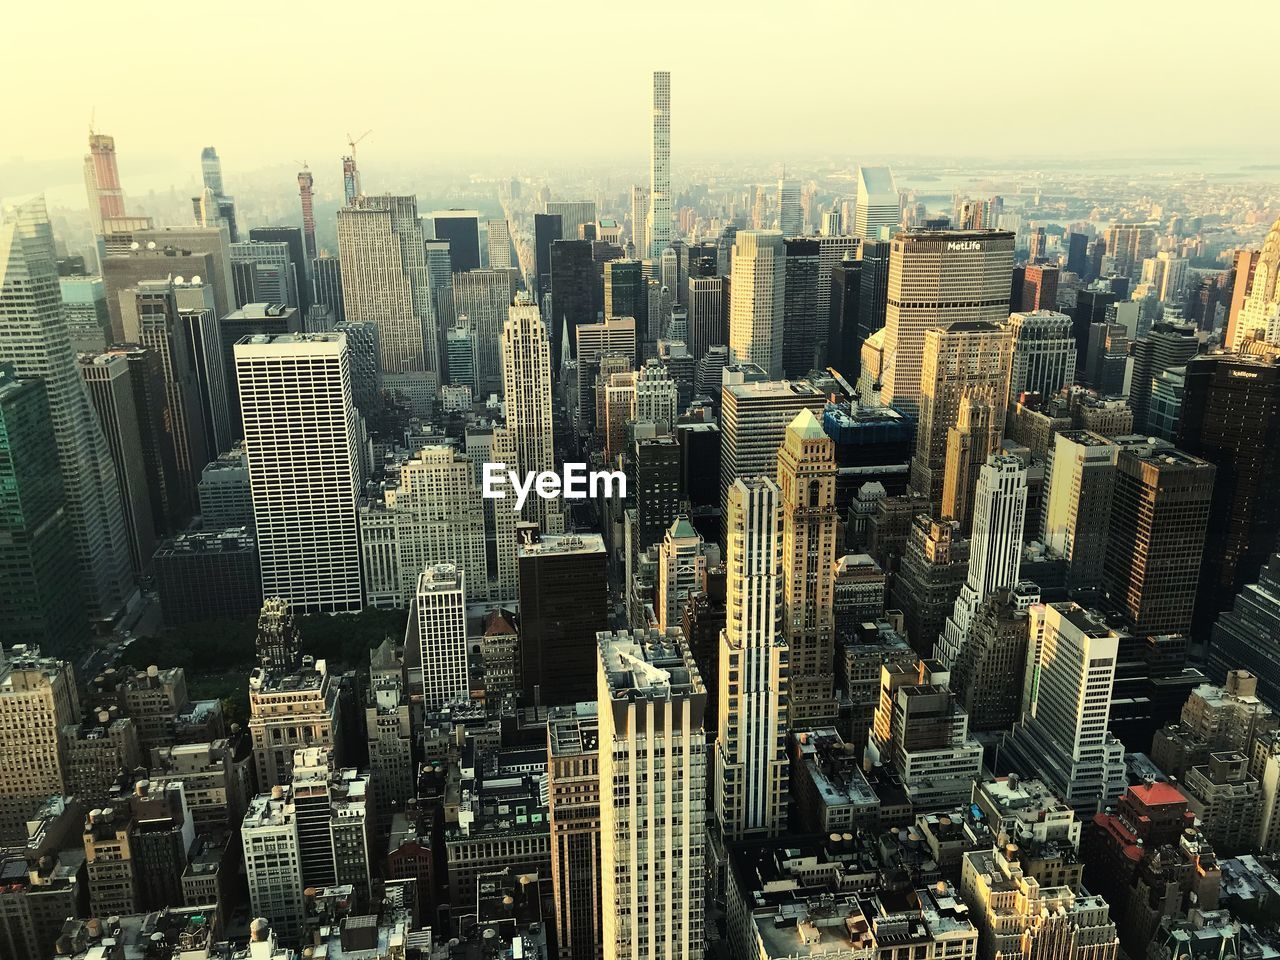 cityscape, city, building exterior, office building exterior, built structure, skyscraper, building, tall - high, architecture, modern, crowd, sky, tower, residential district, urban skyline, crowded, landscape, downtown district, nature, outdoors, financial district, spire